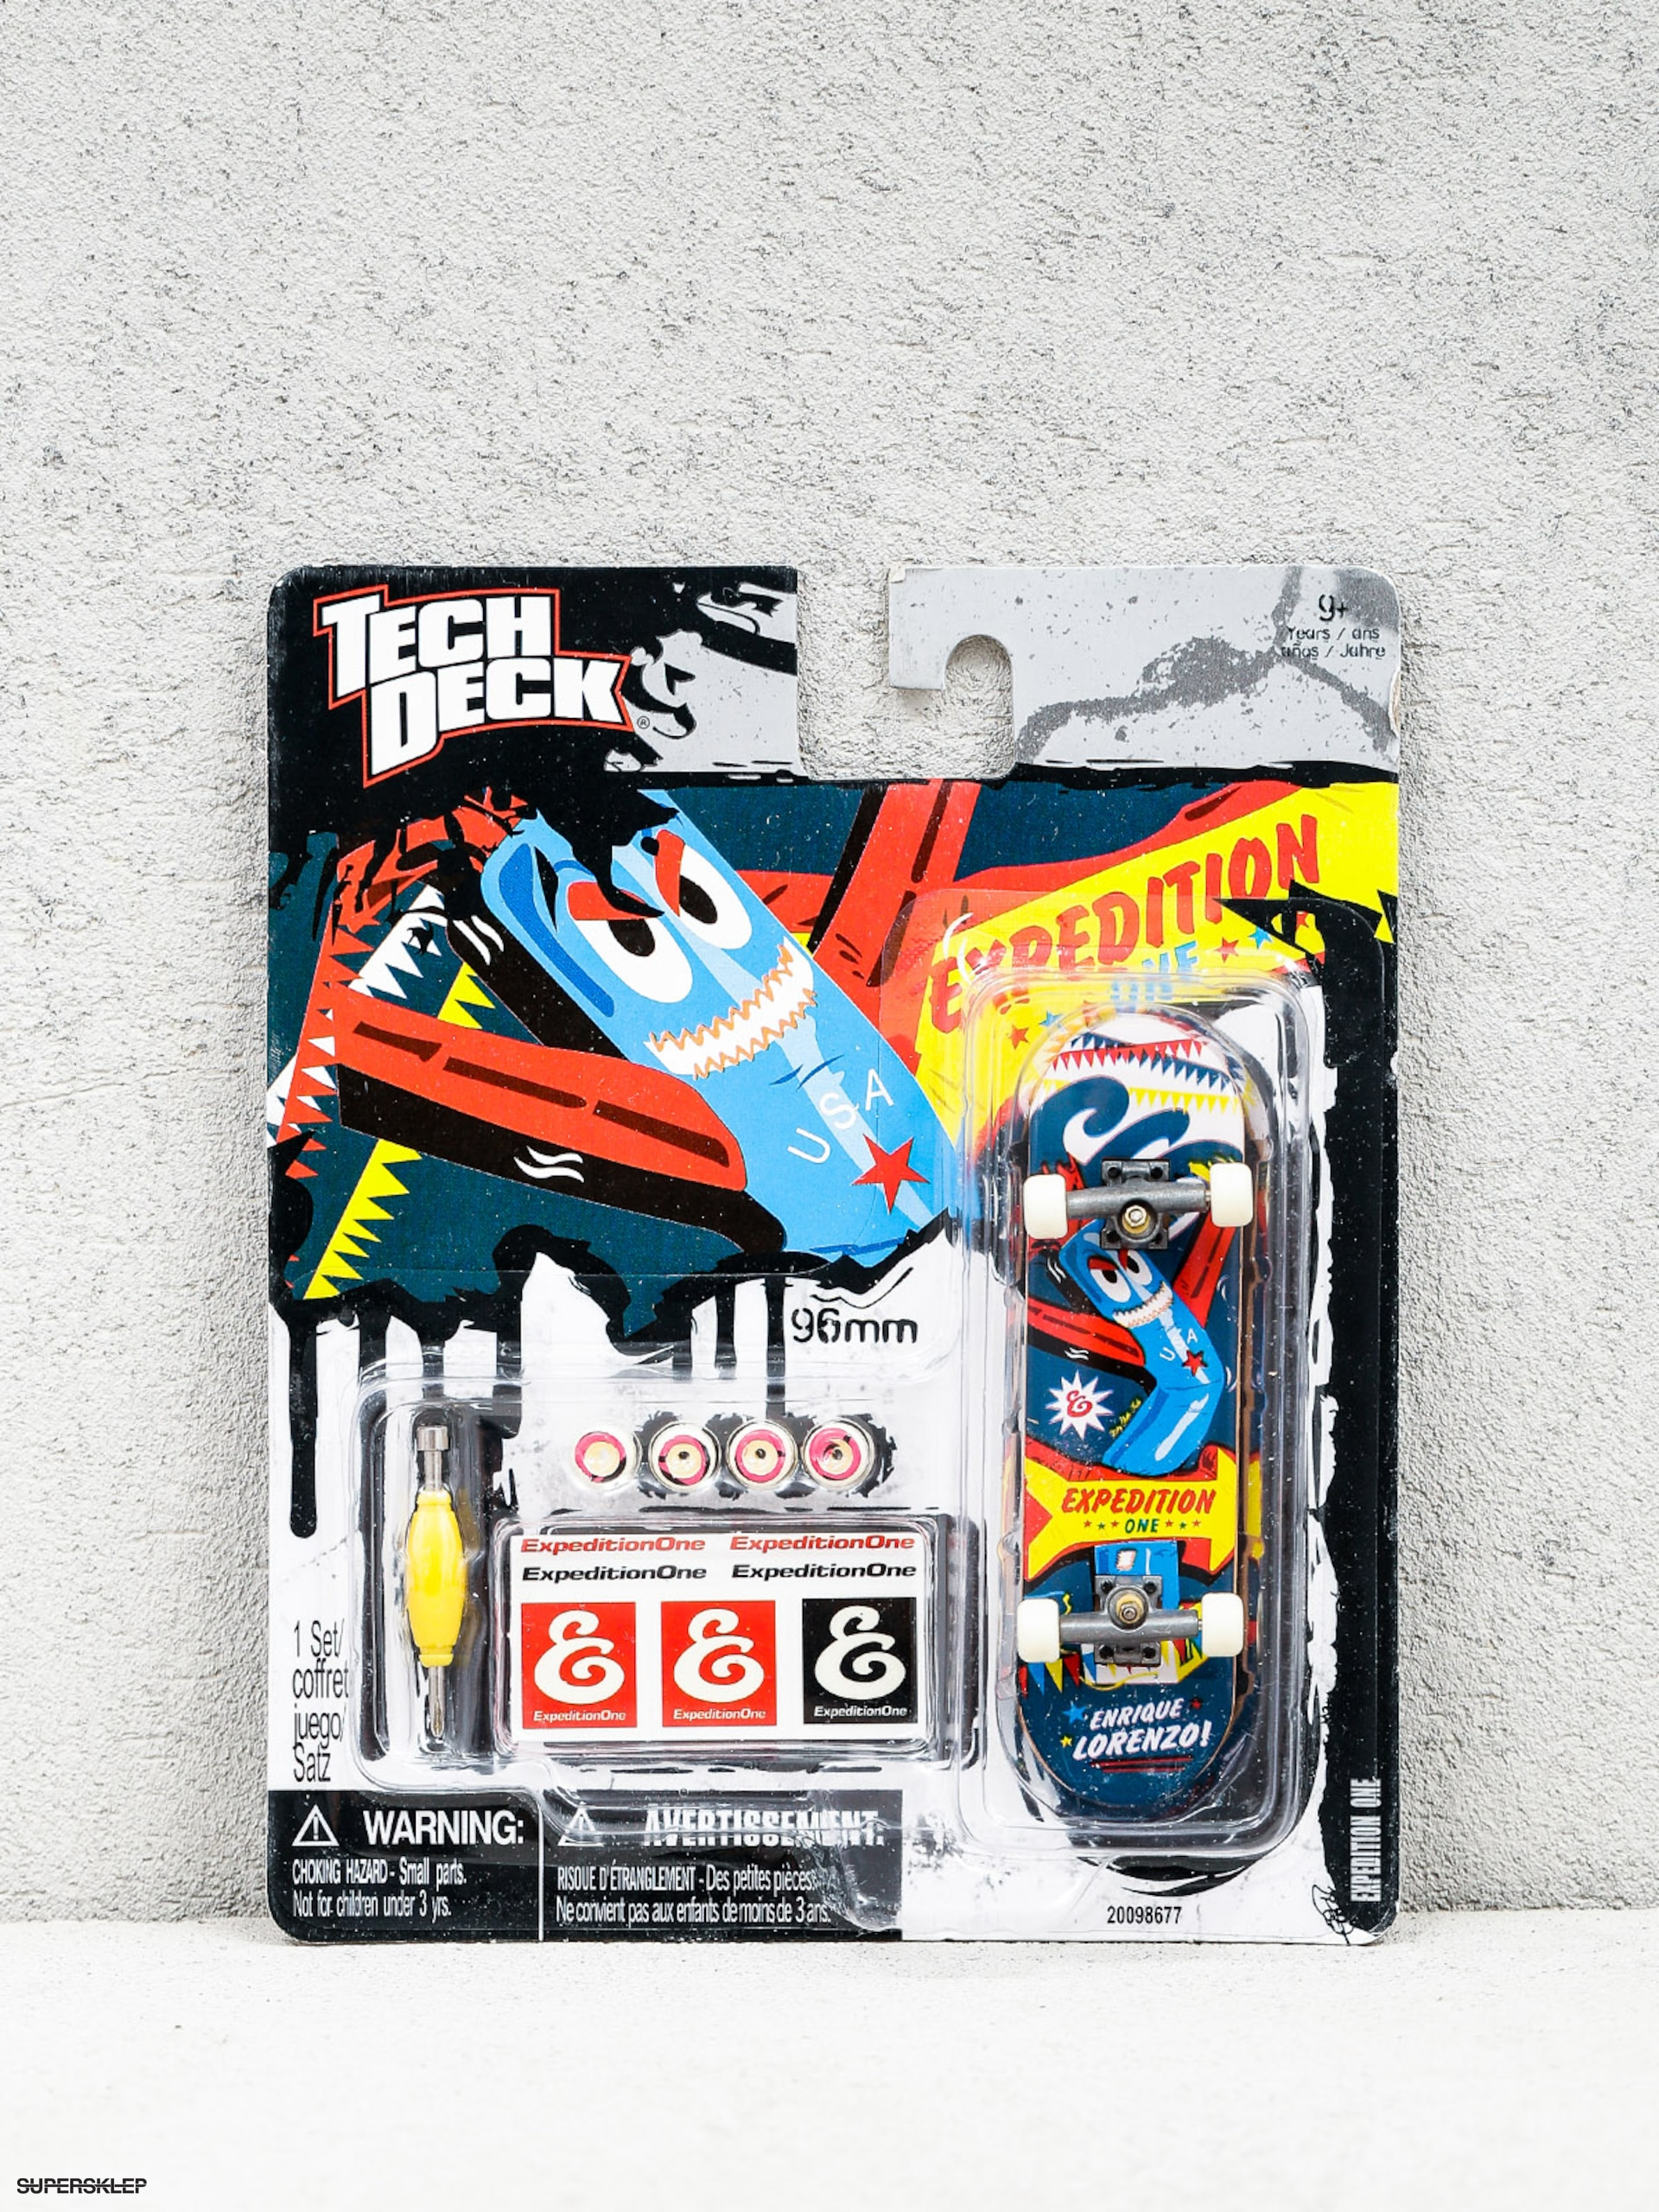 Fingerboard Tech Deck Expedition One 02